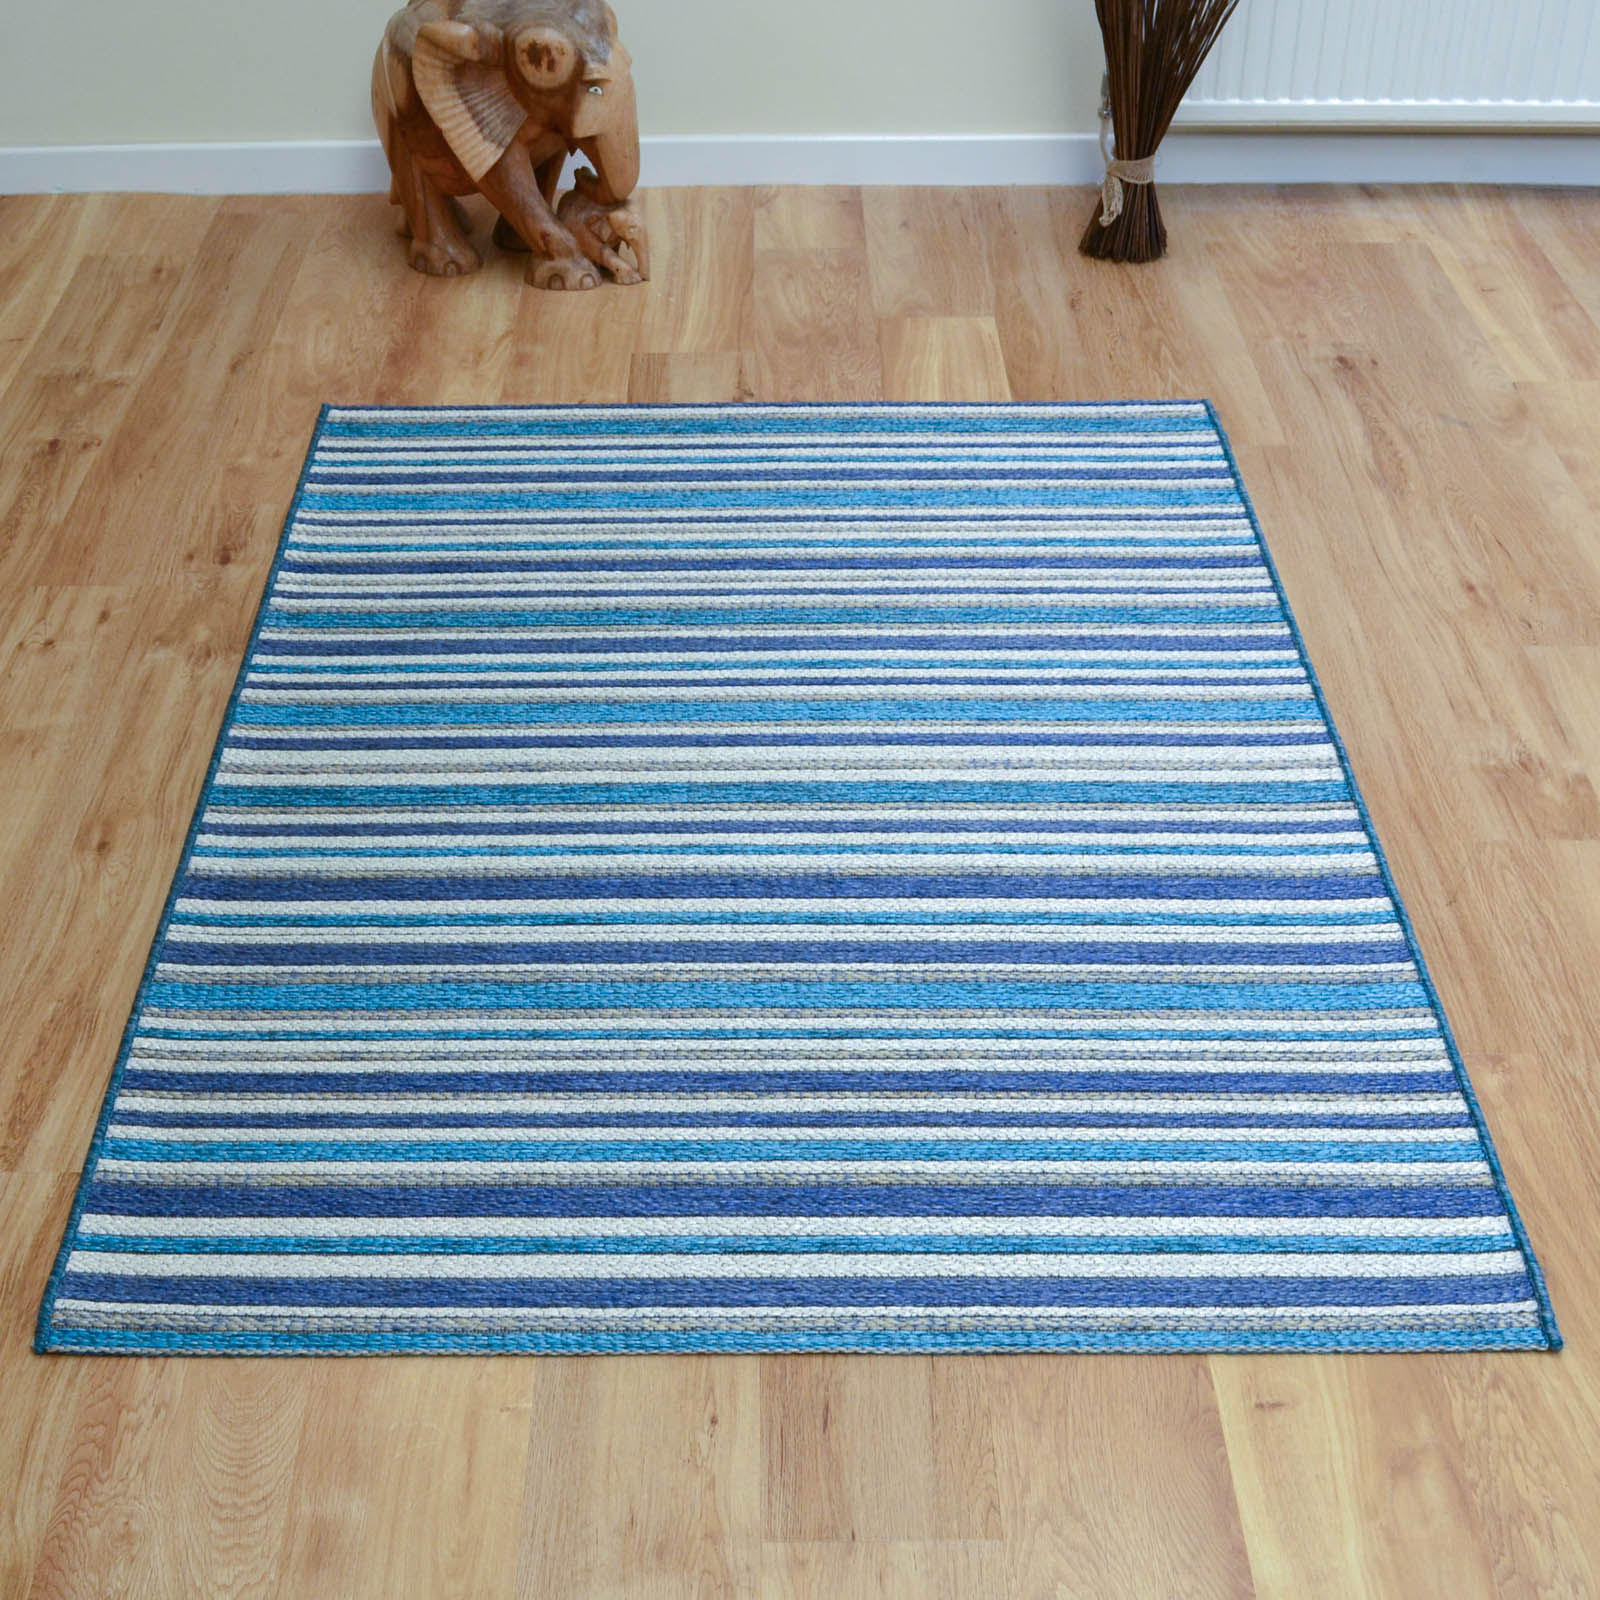 Brighton Rugs 98170 5005 in Blue